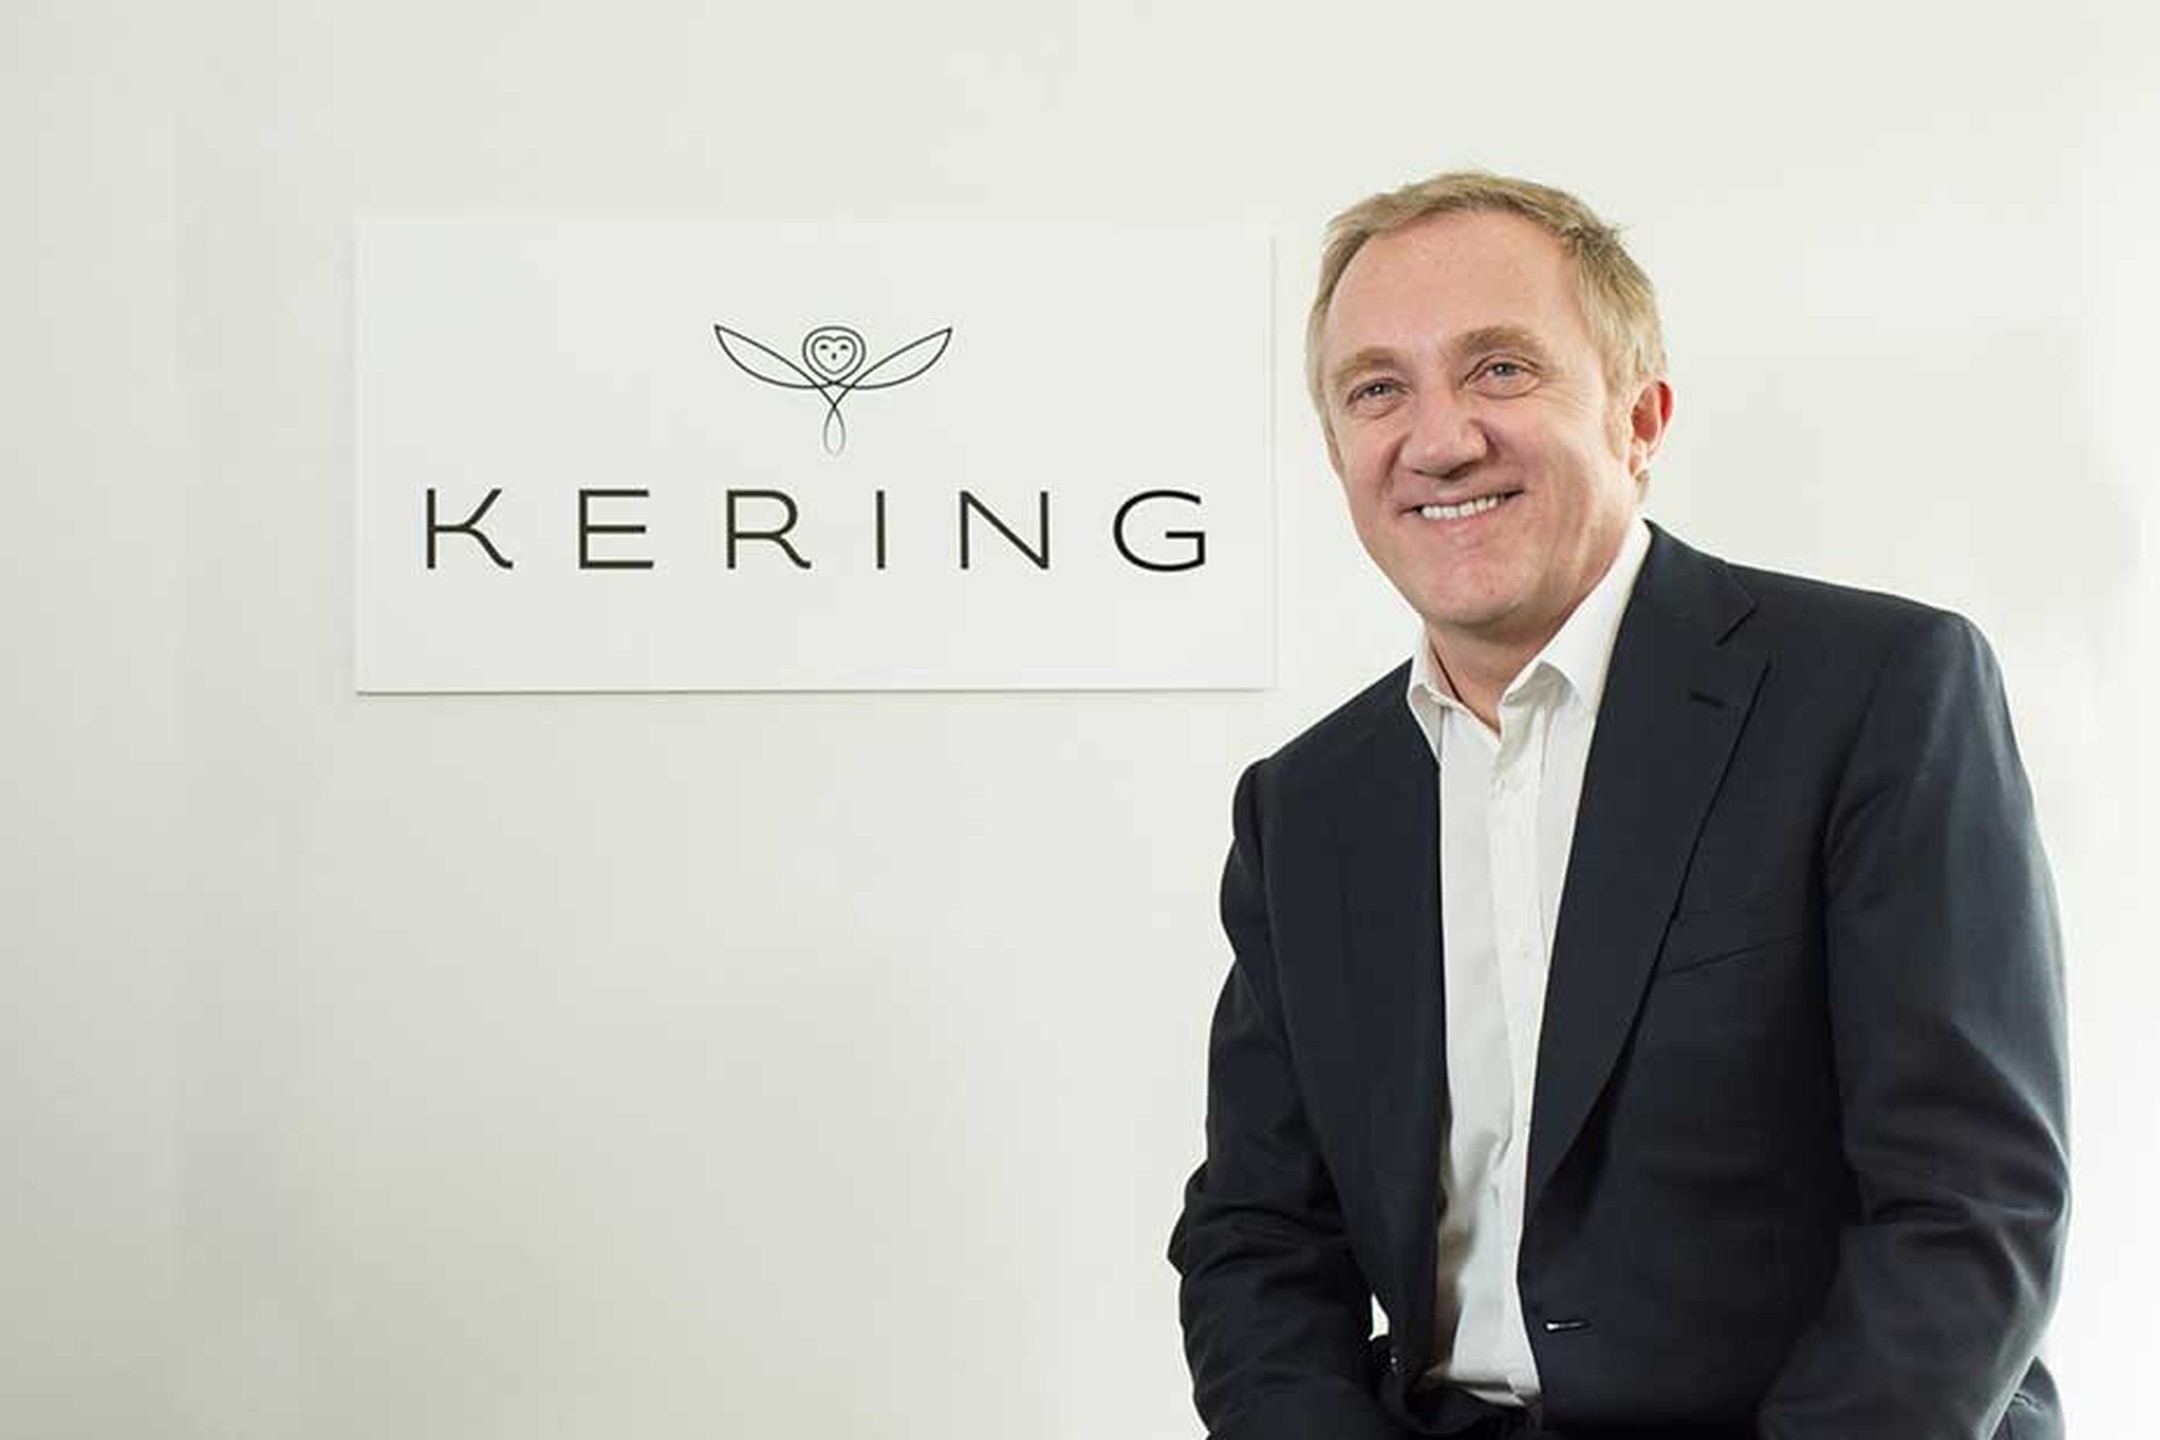 François-Henri Pinault, head of the luxury conglomerate Kering, which has acquired luxury Swiss watchmaker Ulysse Nardin.